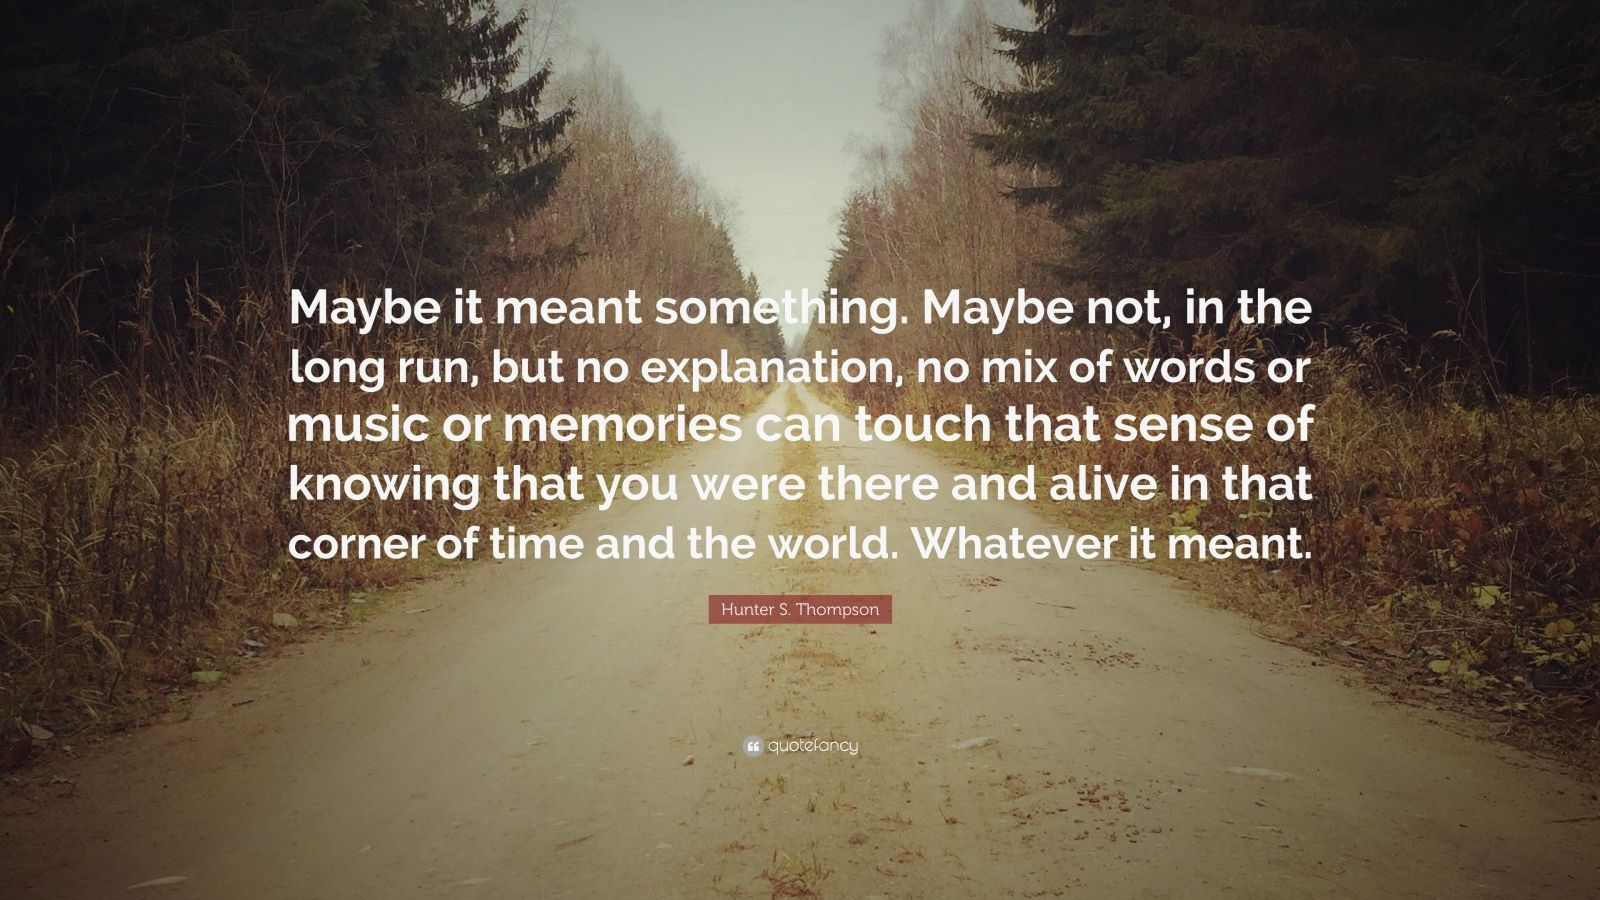 """Hunter S. Thompson Quote: """"Maybe it meant something. Maybe not, in the long run, but no explanation, no mix of words or music or memories can touch that sense of knowing that you were there and alive in that corner of time and the world. Whatever it meant."""""""